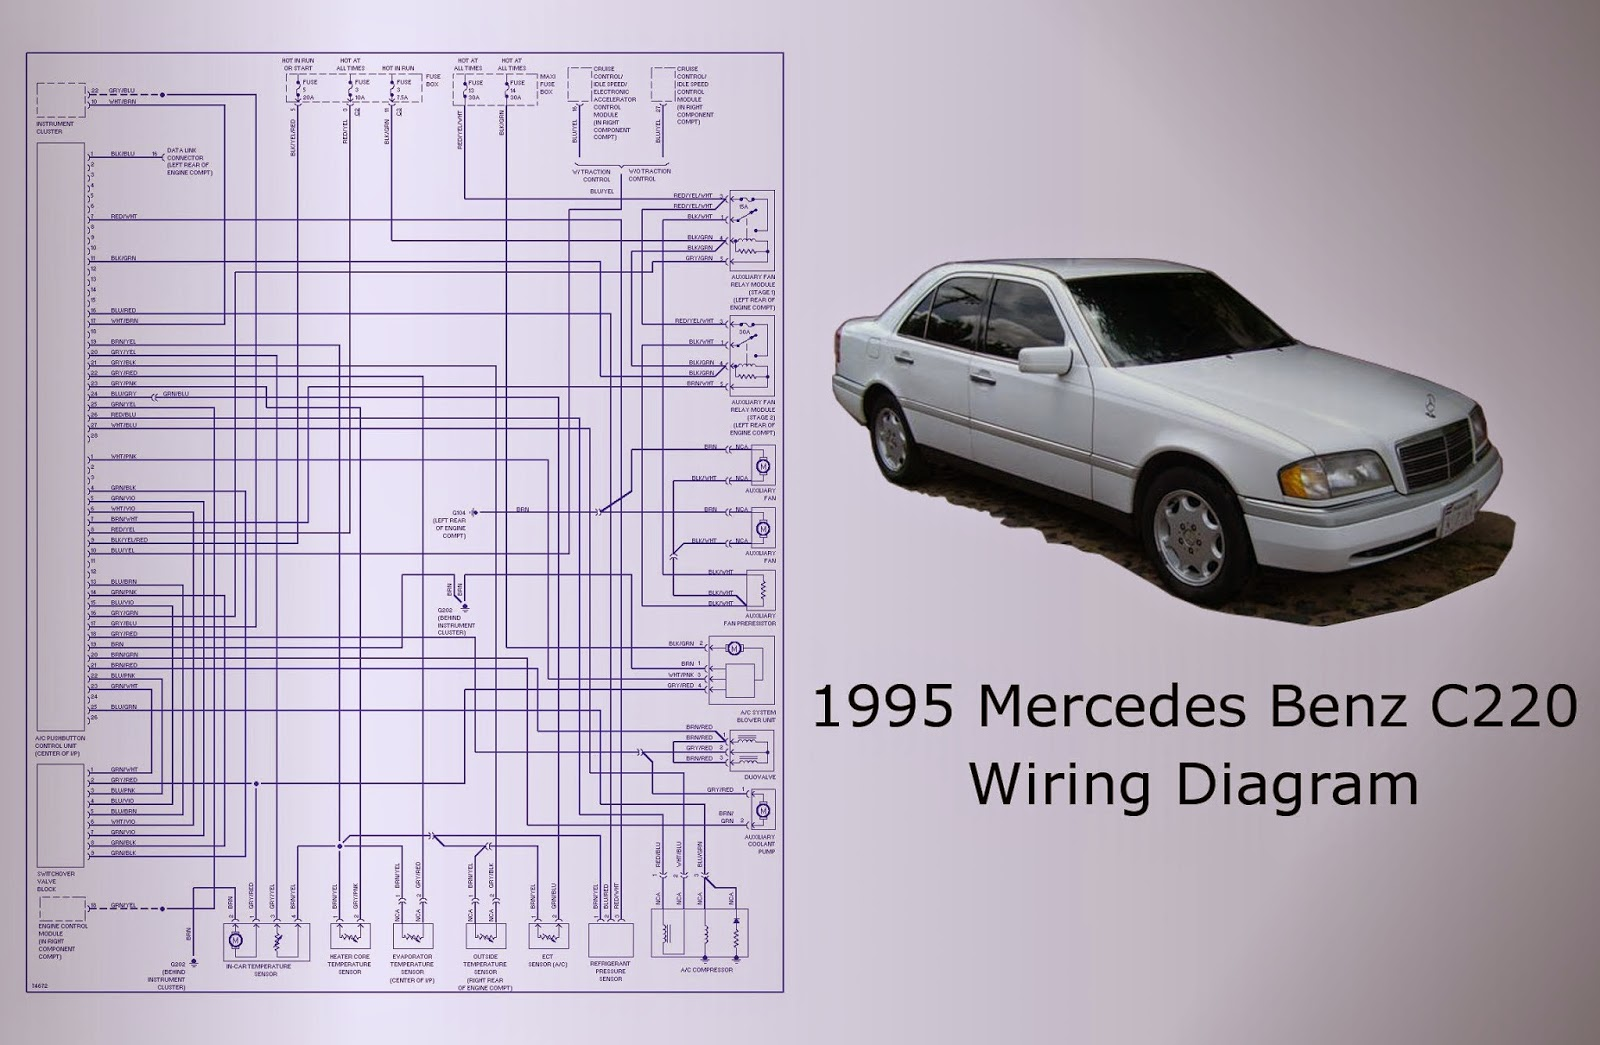 1995 Mercedes Benz C220 Wiring Diagram | Auto Wiring Diagrams